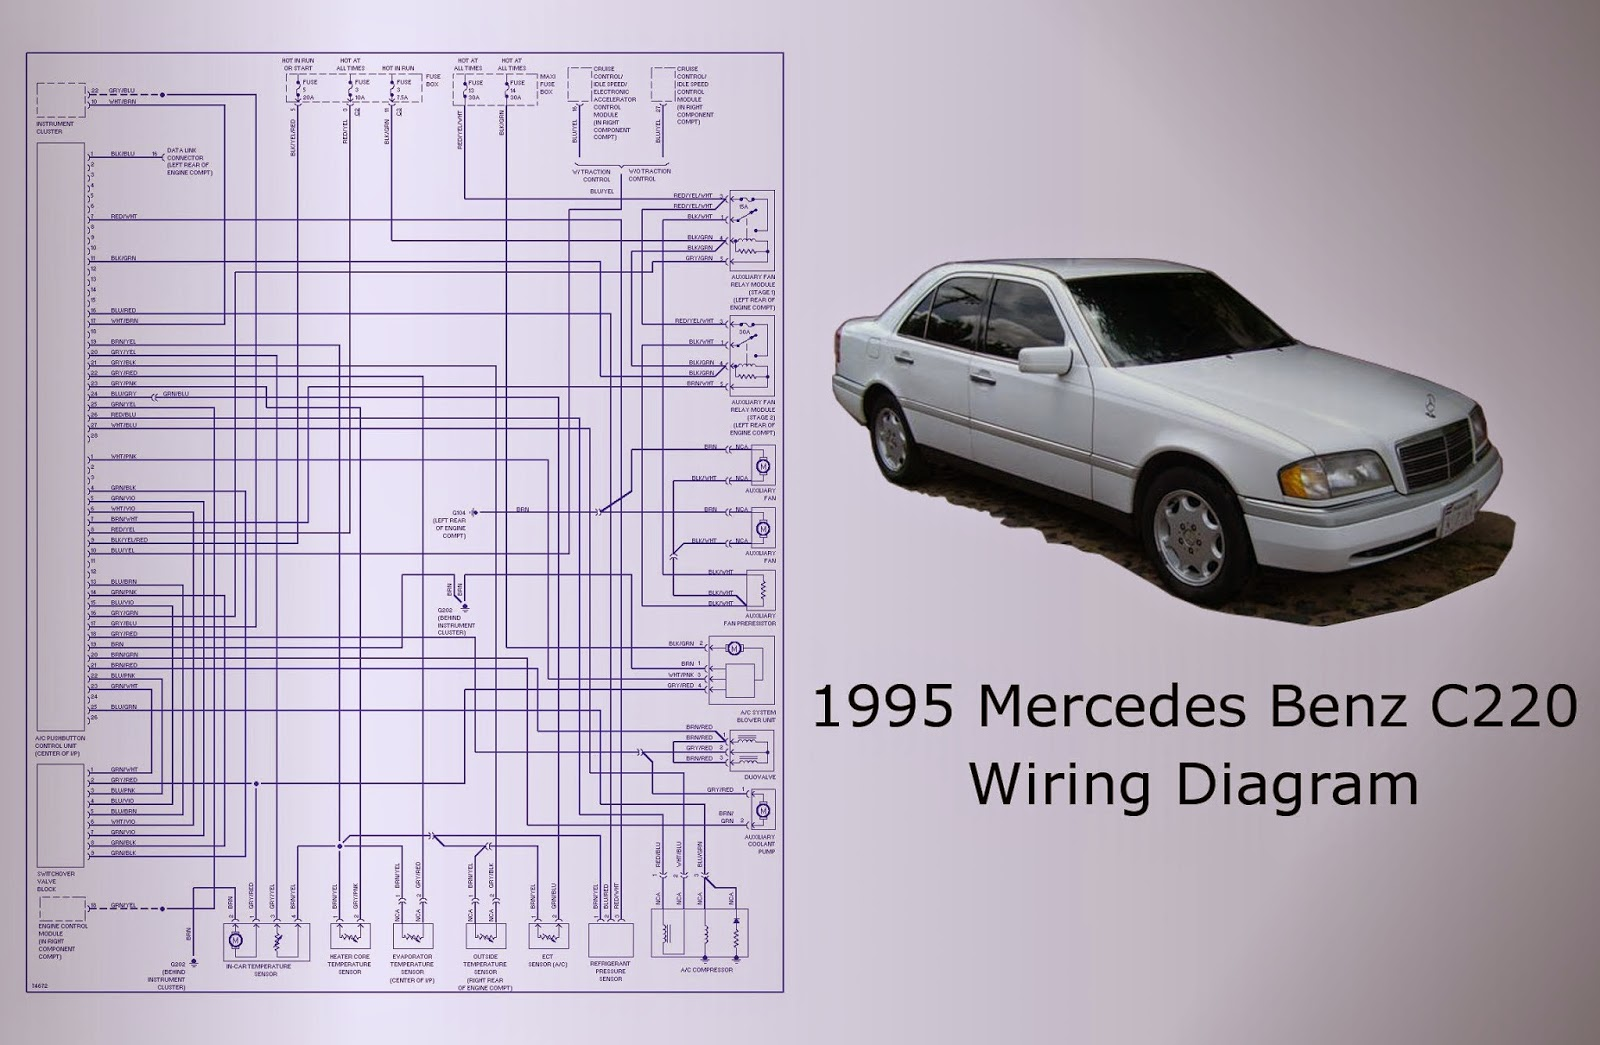 1995 Mercedes Benz C220 Wiring Diagram | Auto Wiring Diagrams